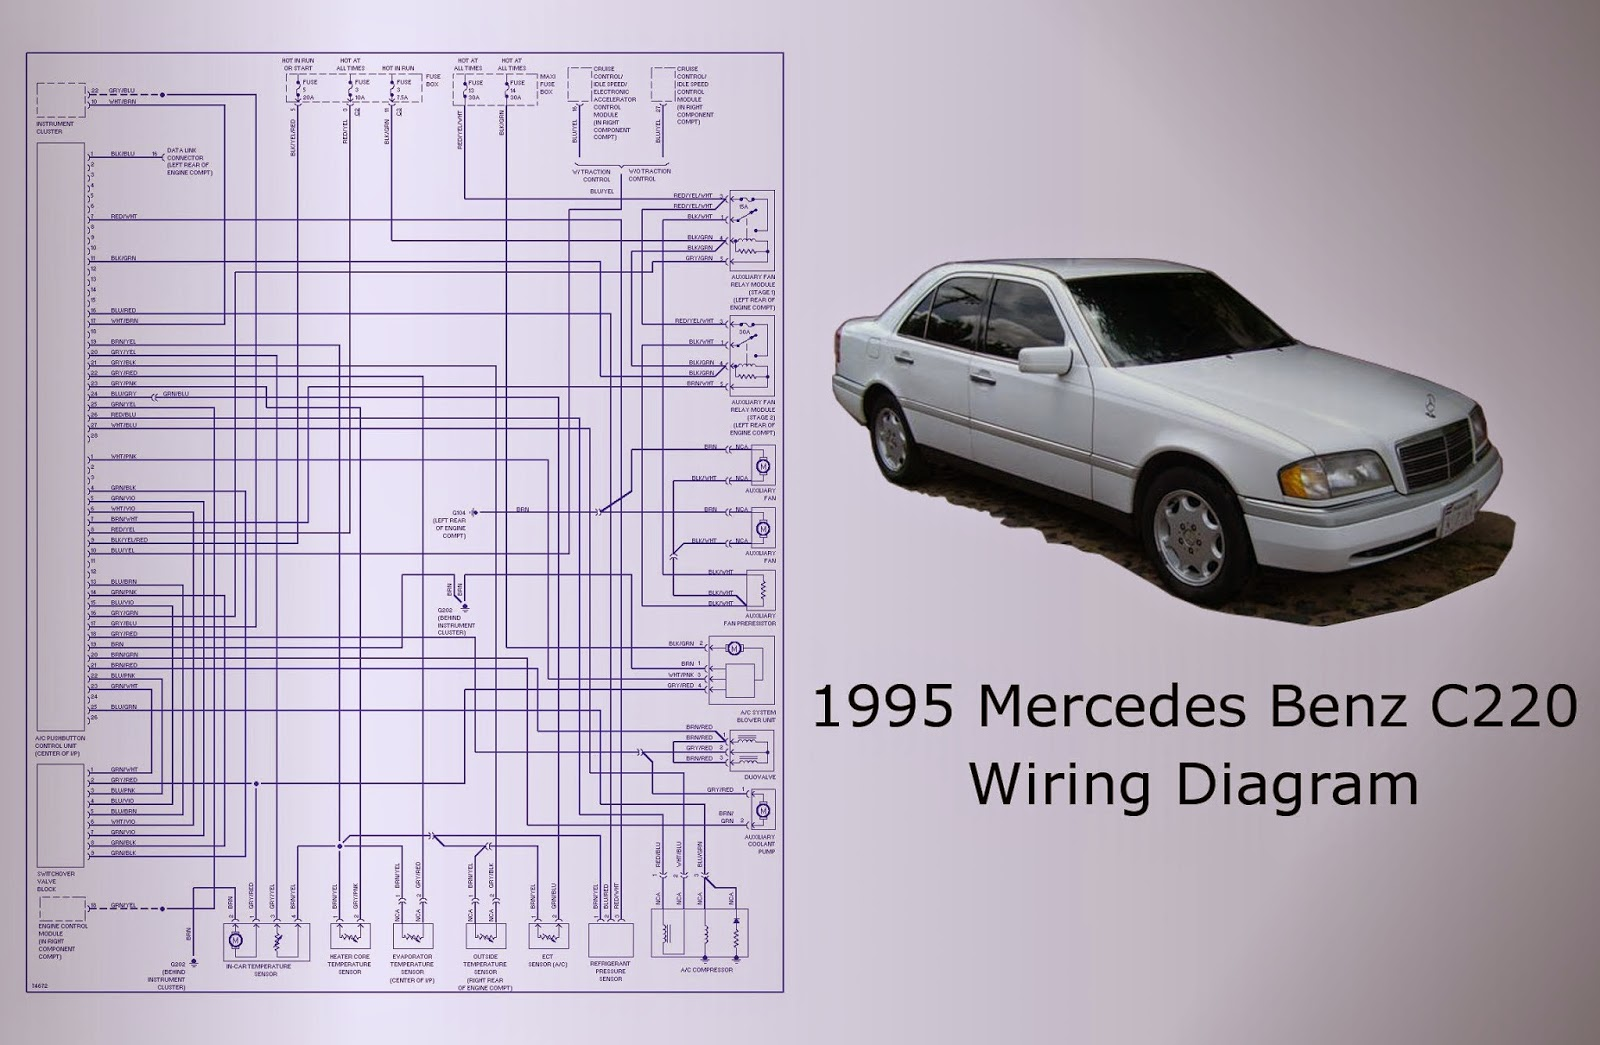 1995 Mercedes Benz C220 Wiring Diagram | Auto Wiring Diagrams